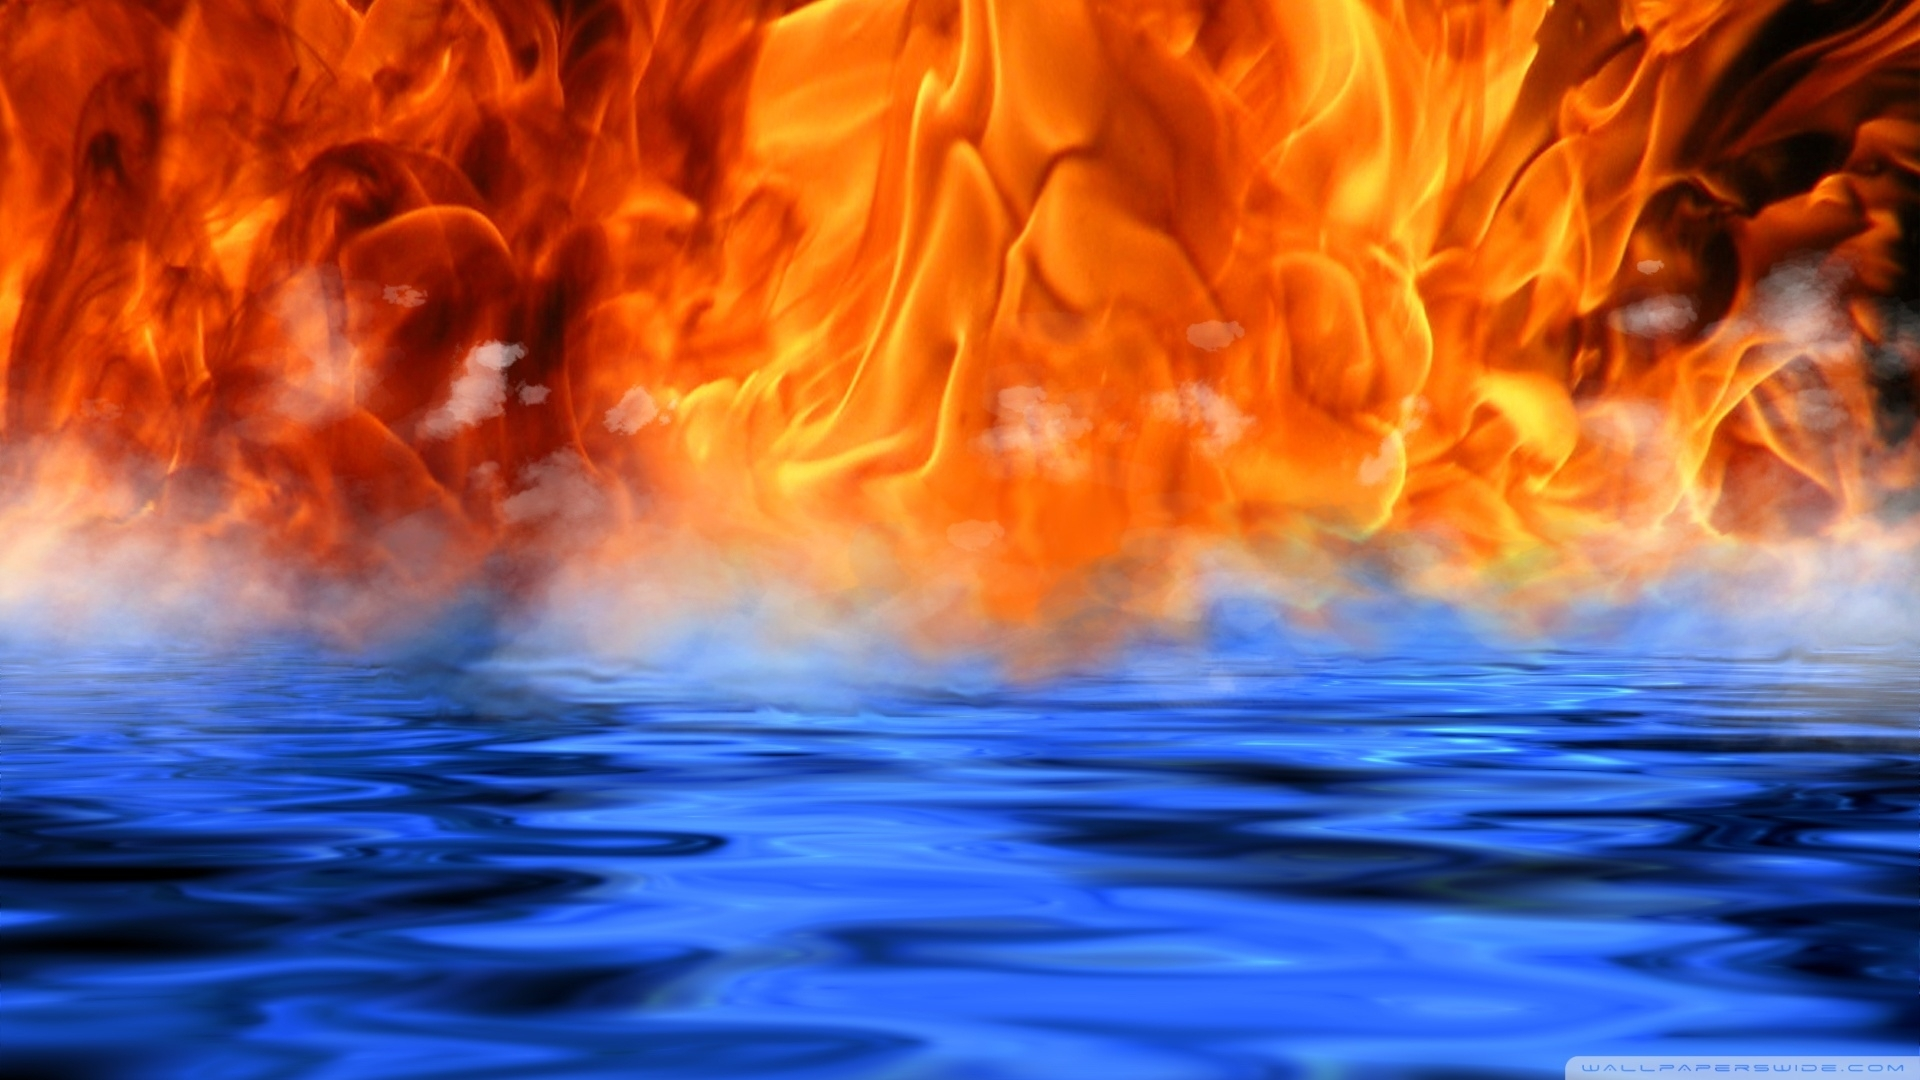 download fire water meet wallpaper 1920x1080 | wallpoper #442604